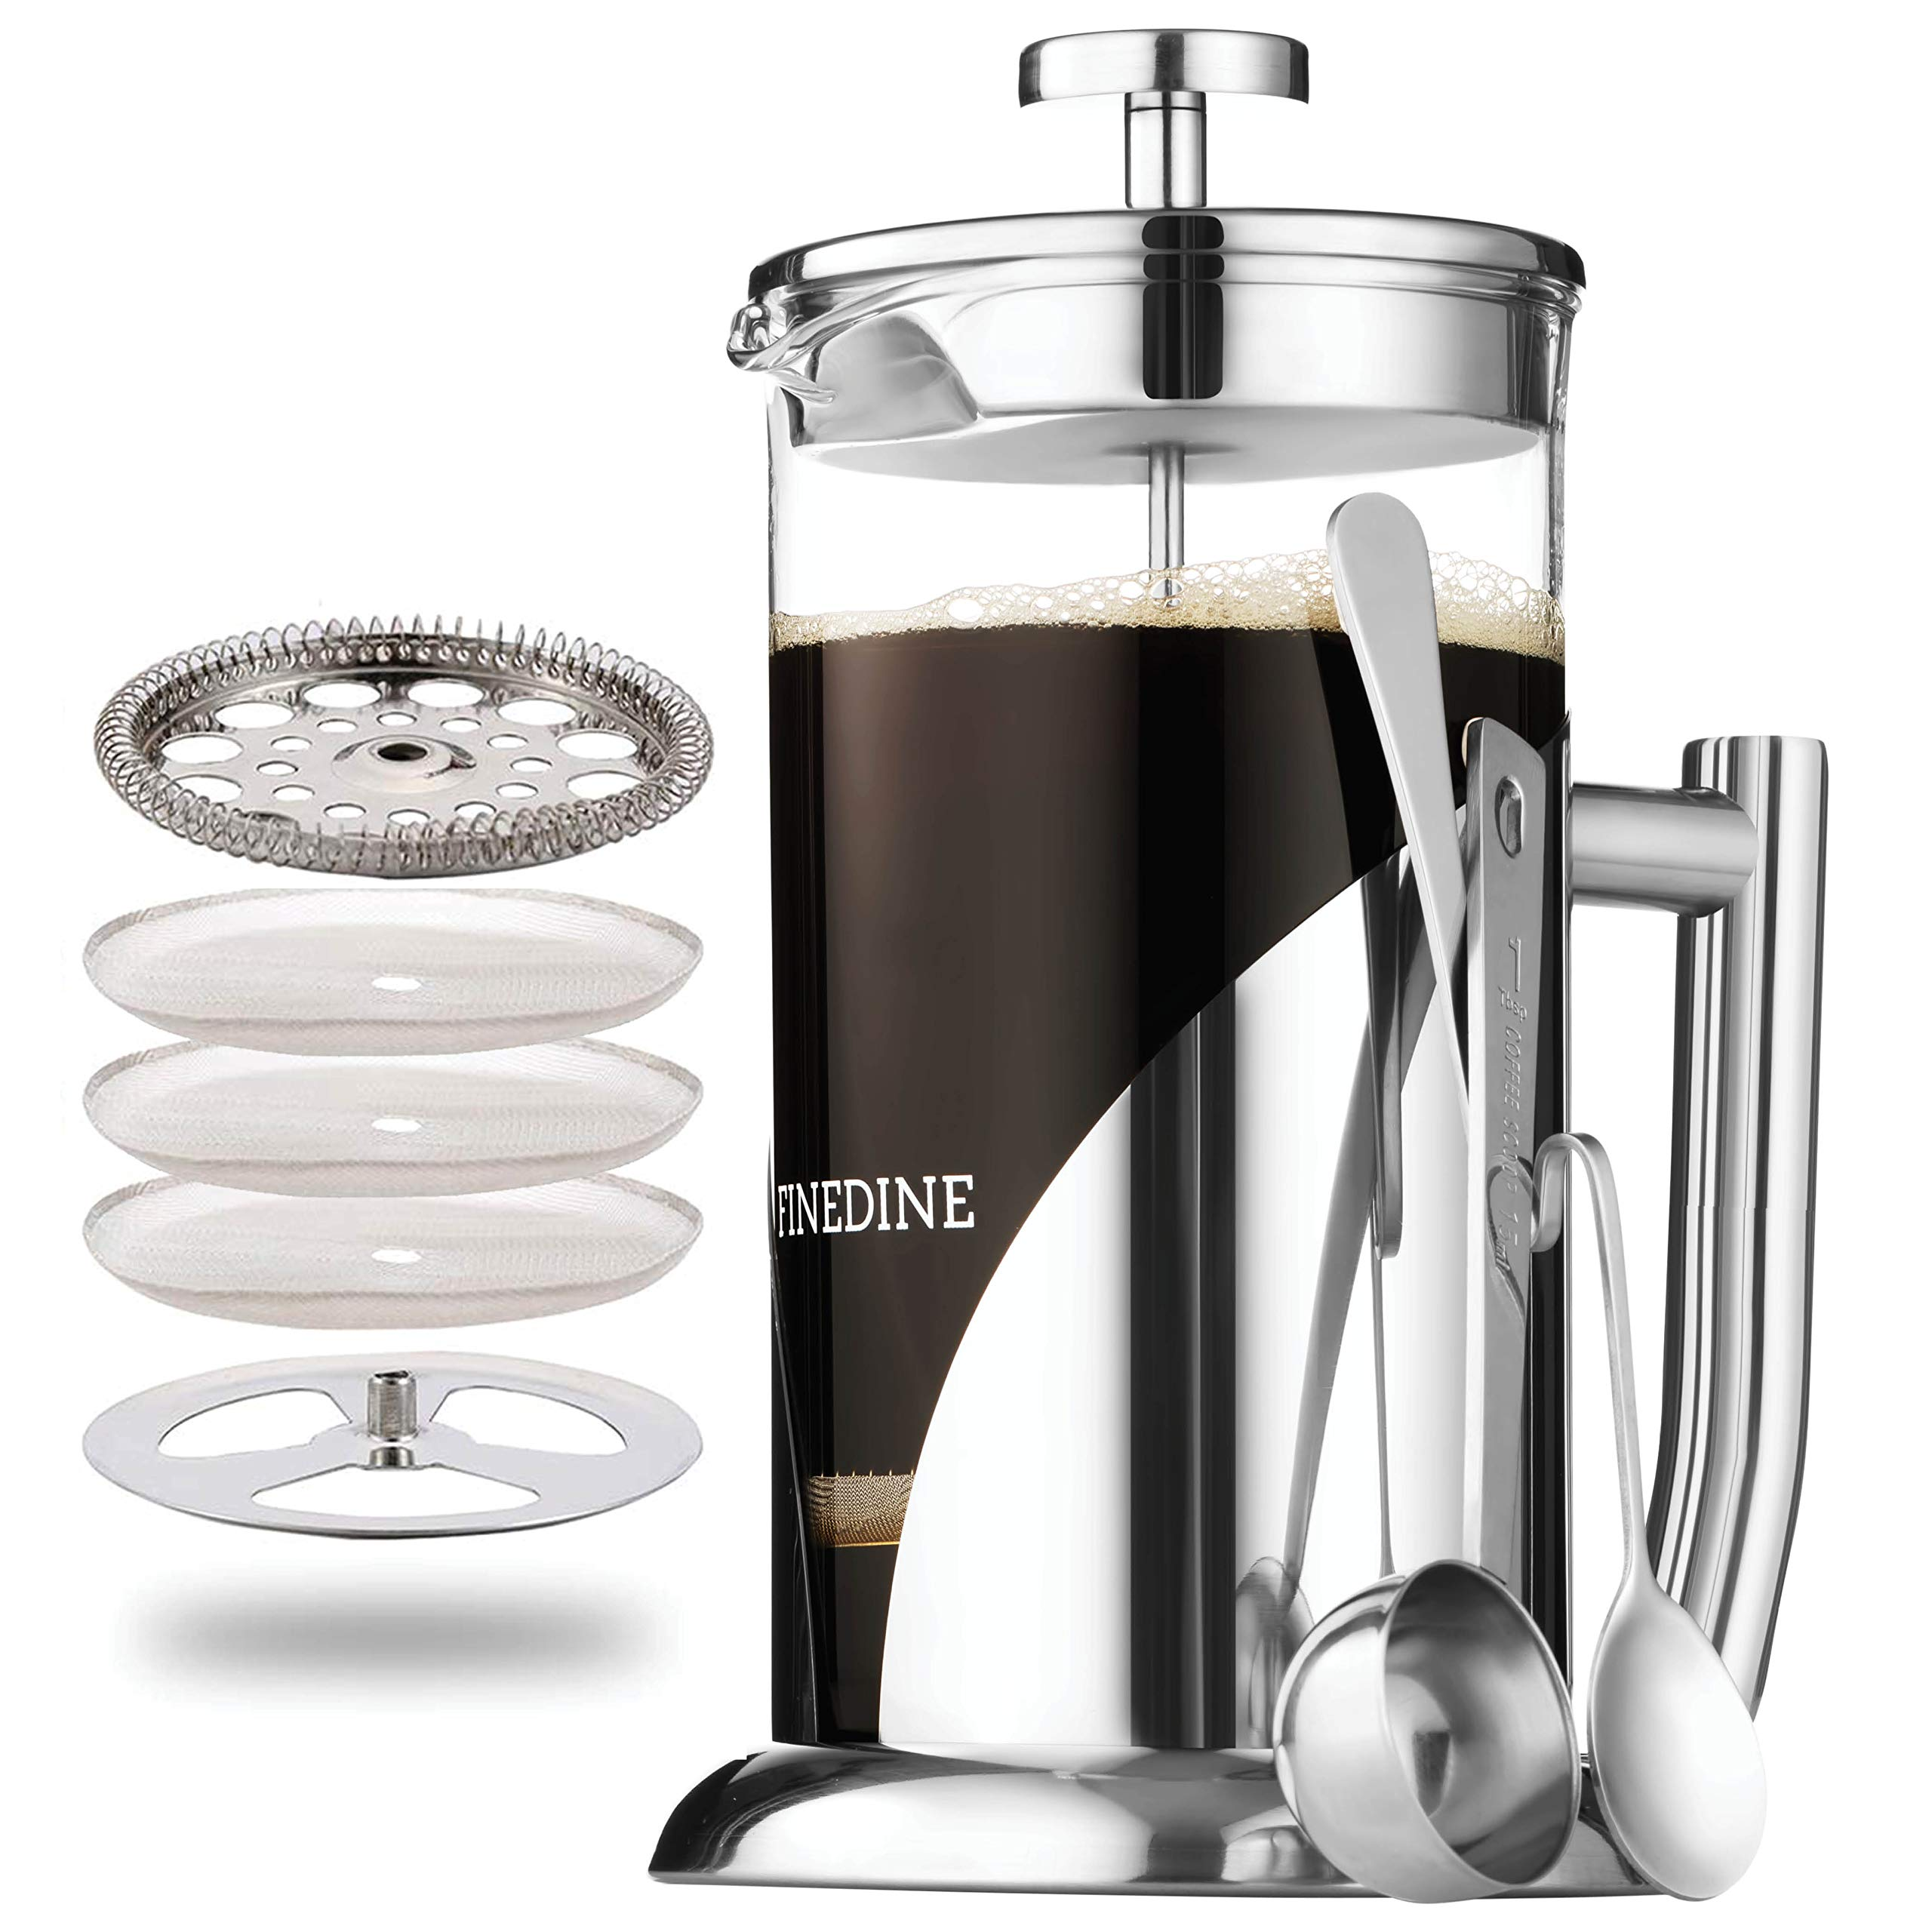 Amazon Com French Press Coffee Maker Stainless Steel With 34 Ounce Borosilicate Glass Heat Resistant Beaker Triple Filtered European Style Coffee Press Includes Spoon Measuring Scoop Bonus Filter Kitchen Dining